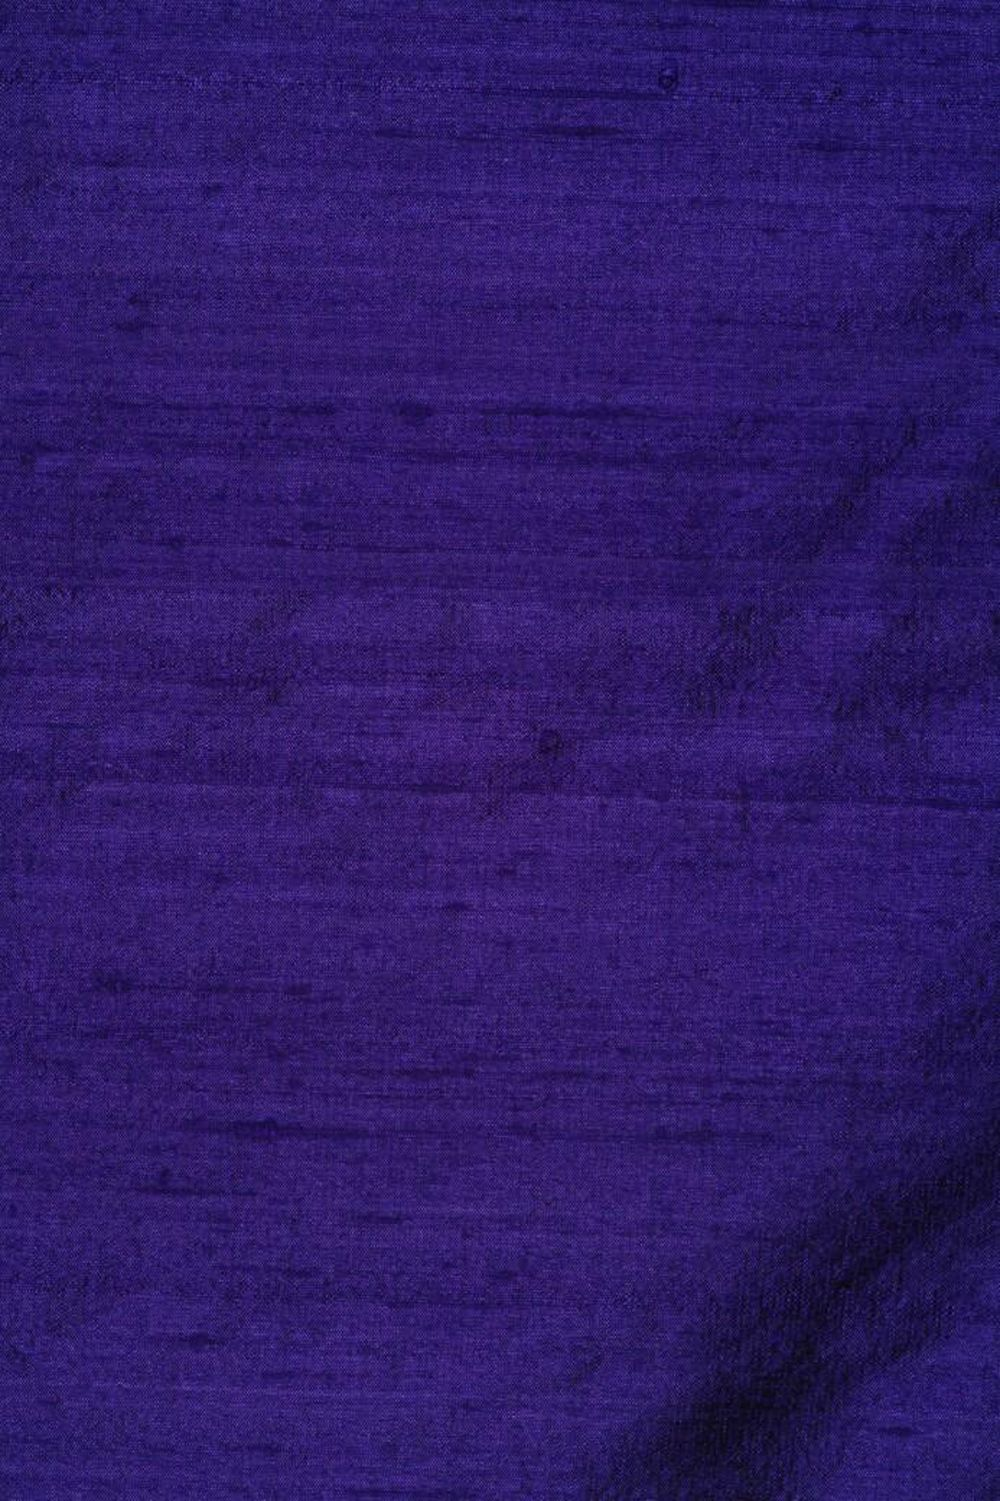 Photo of the fabric Indulgence Purple-111 swatch by Zepel. Use for Curtains. Style of Plain